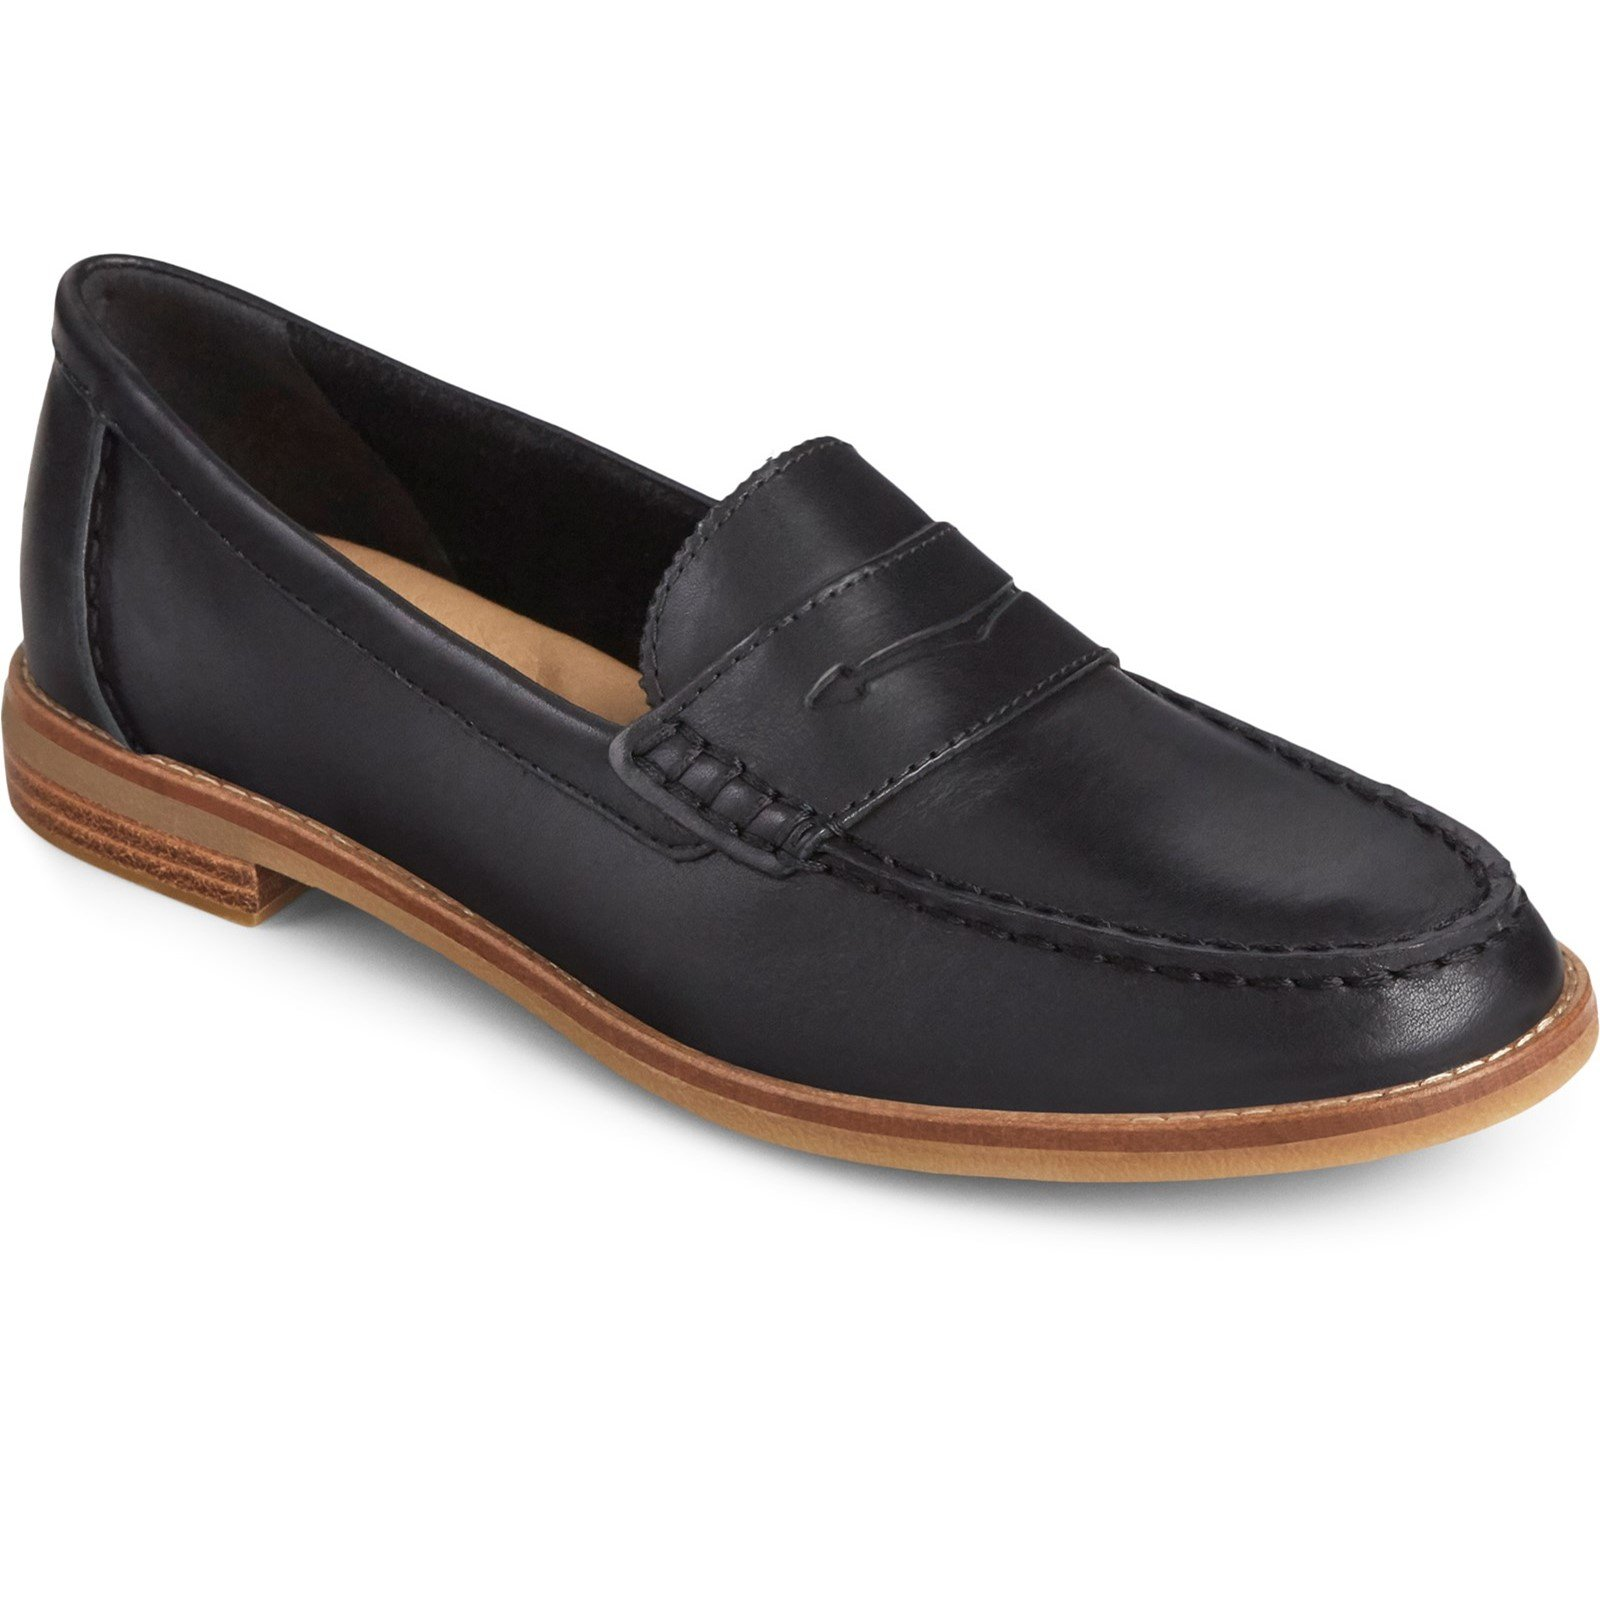 Sperry Women's Seaport Penny Loafer Various Colours 32403 - Black 3